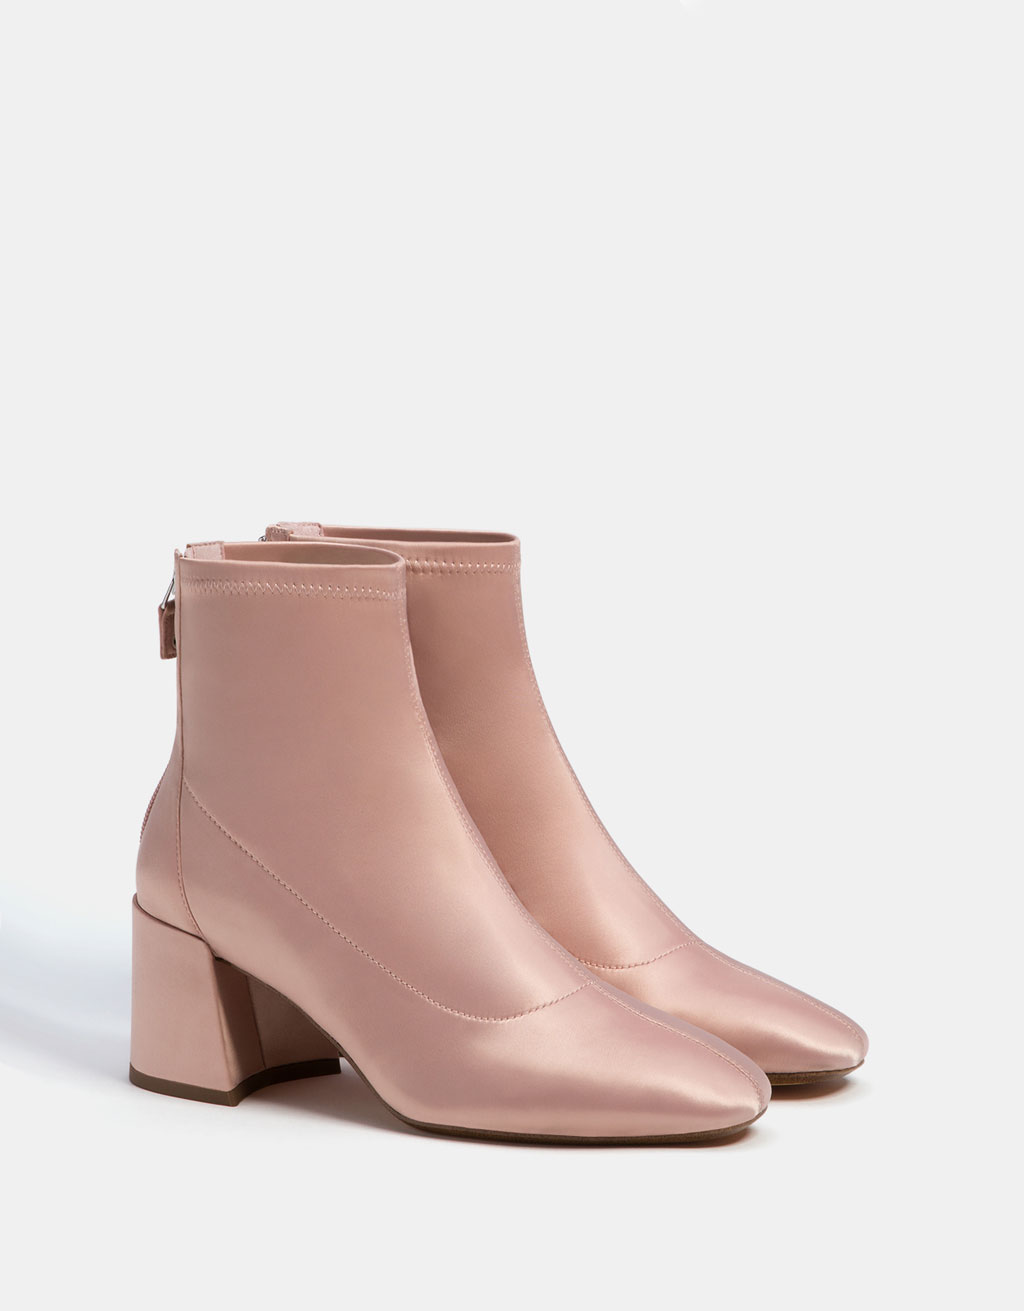 Mid-heel satin ankle boots